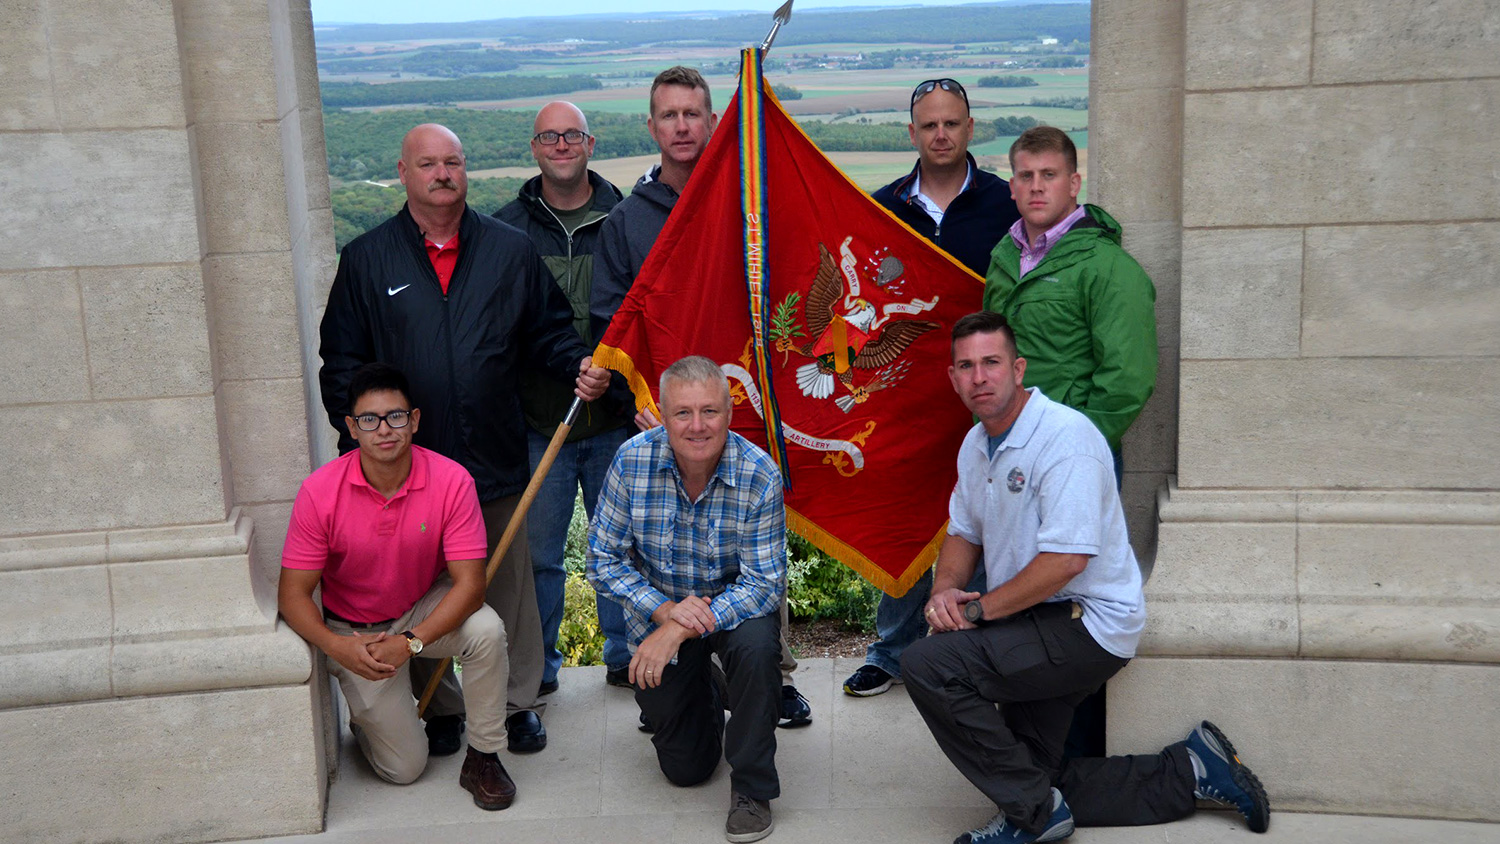 While en route to a ceremony commemorating the 1918 Meuse-Argonne offensive in northeastern France, NC State Army Reserve members stopped at the Montsec American Monument in France, which honors the 1918 Battle of Saint-Mihiel in which their unit fought during WWI. They are holding their 113th Field Artillery Regiment flag.